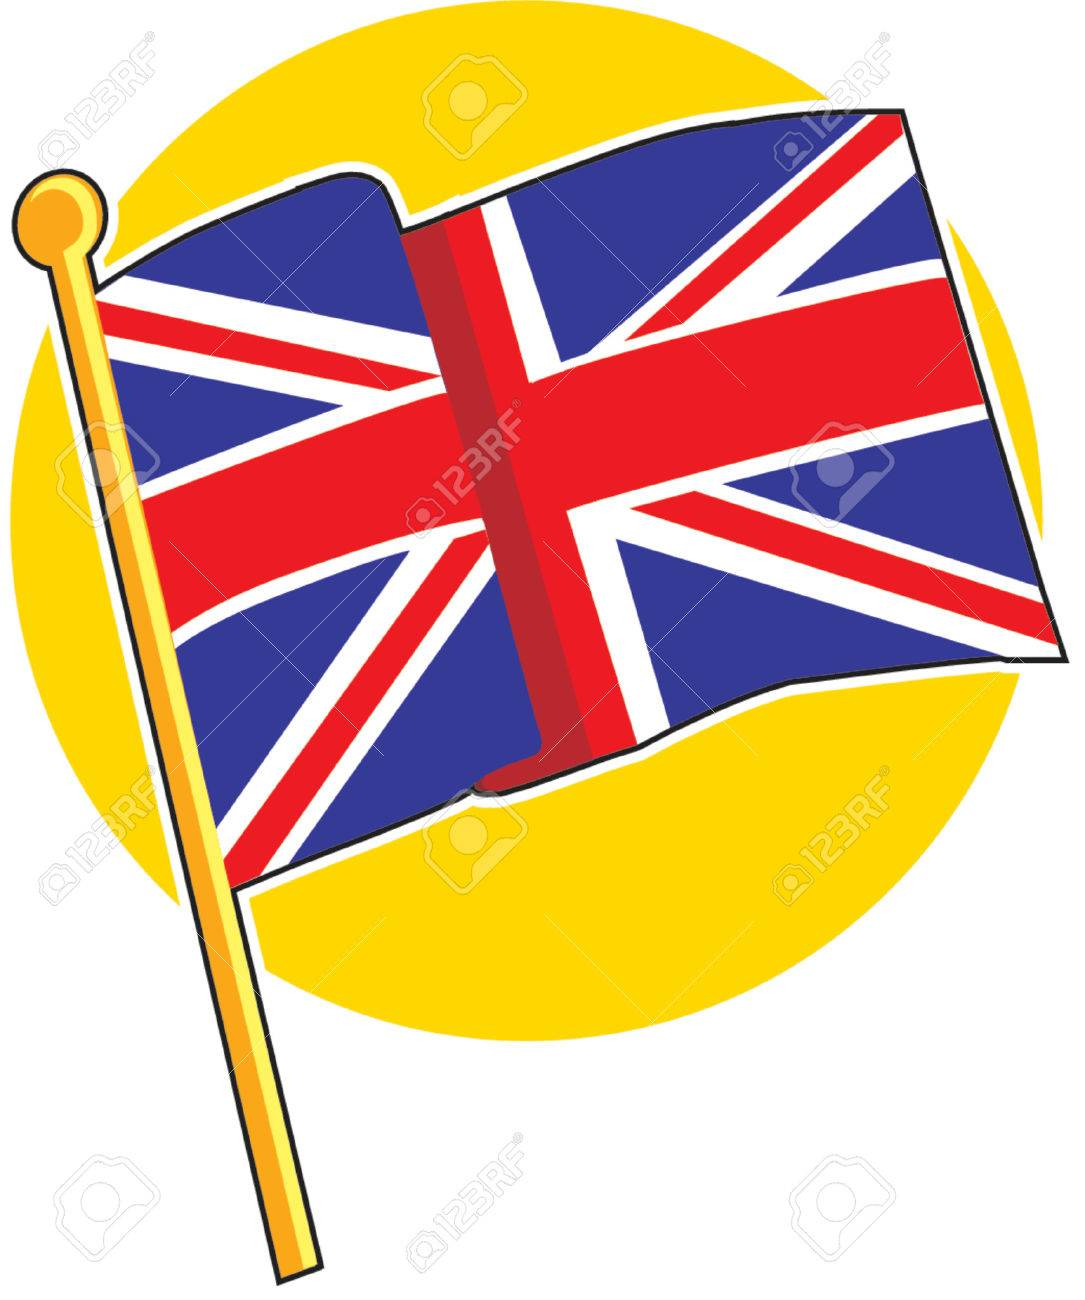 The British flag on a yellow circle Stock Vector - 730840